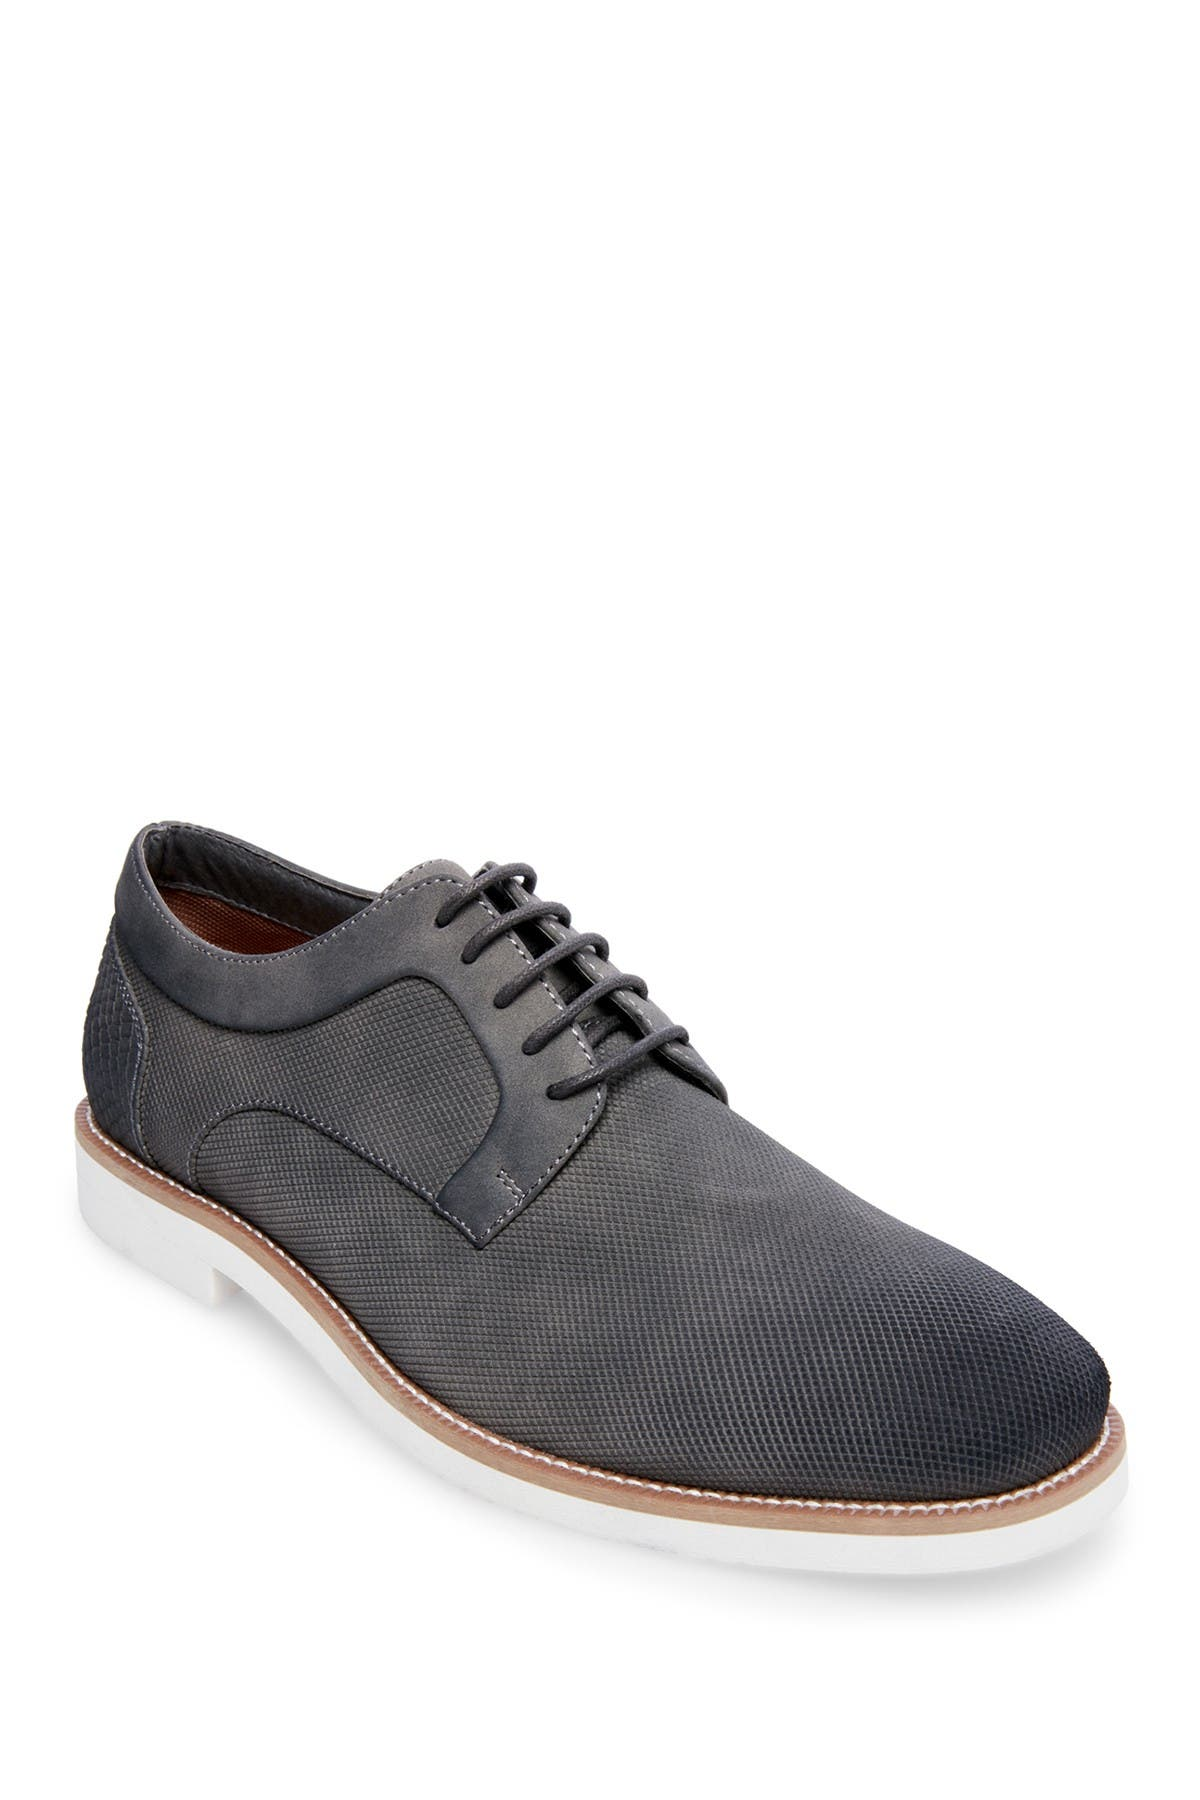 Image of Madden Boxxen Perforated Derby